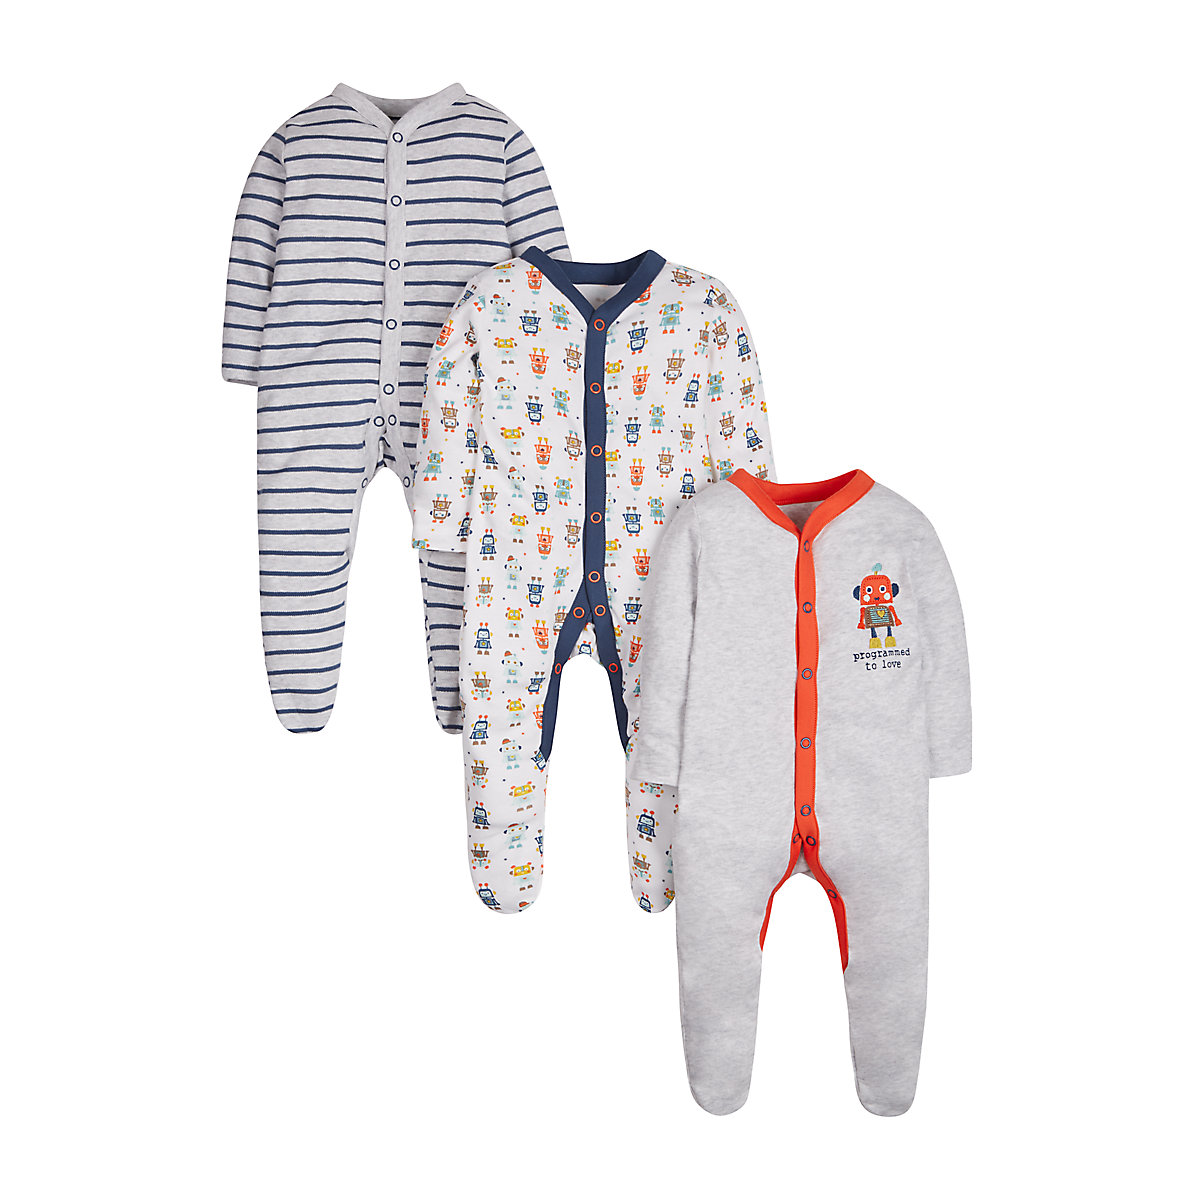 Robot Sleepsuits -3 Pack